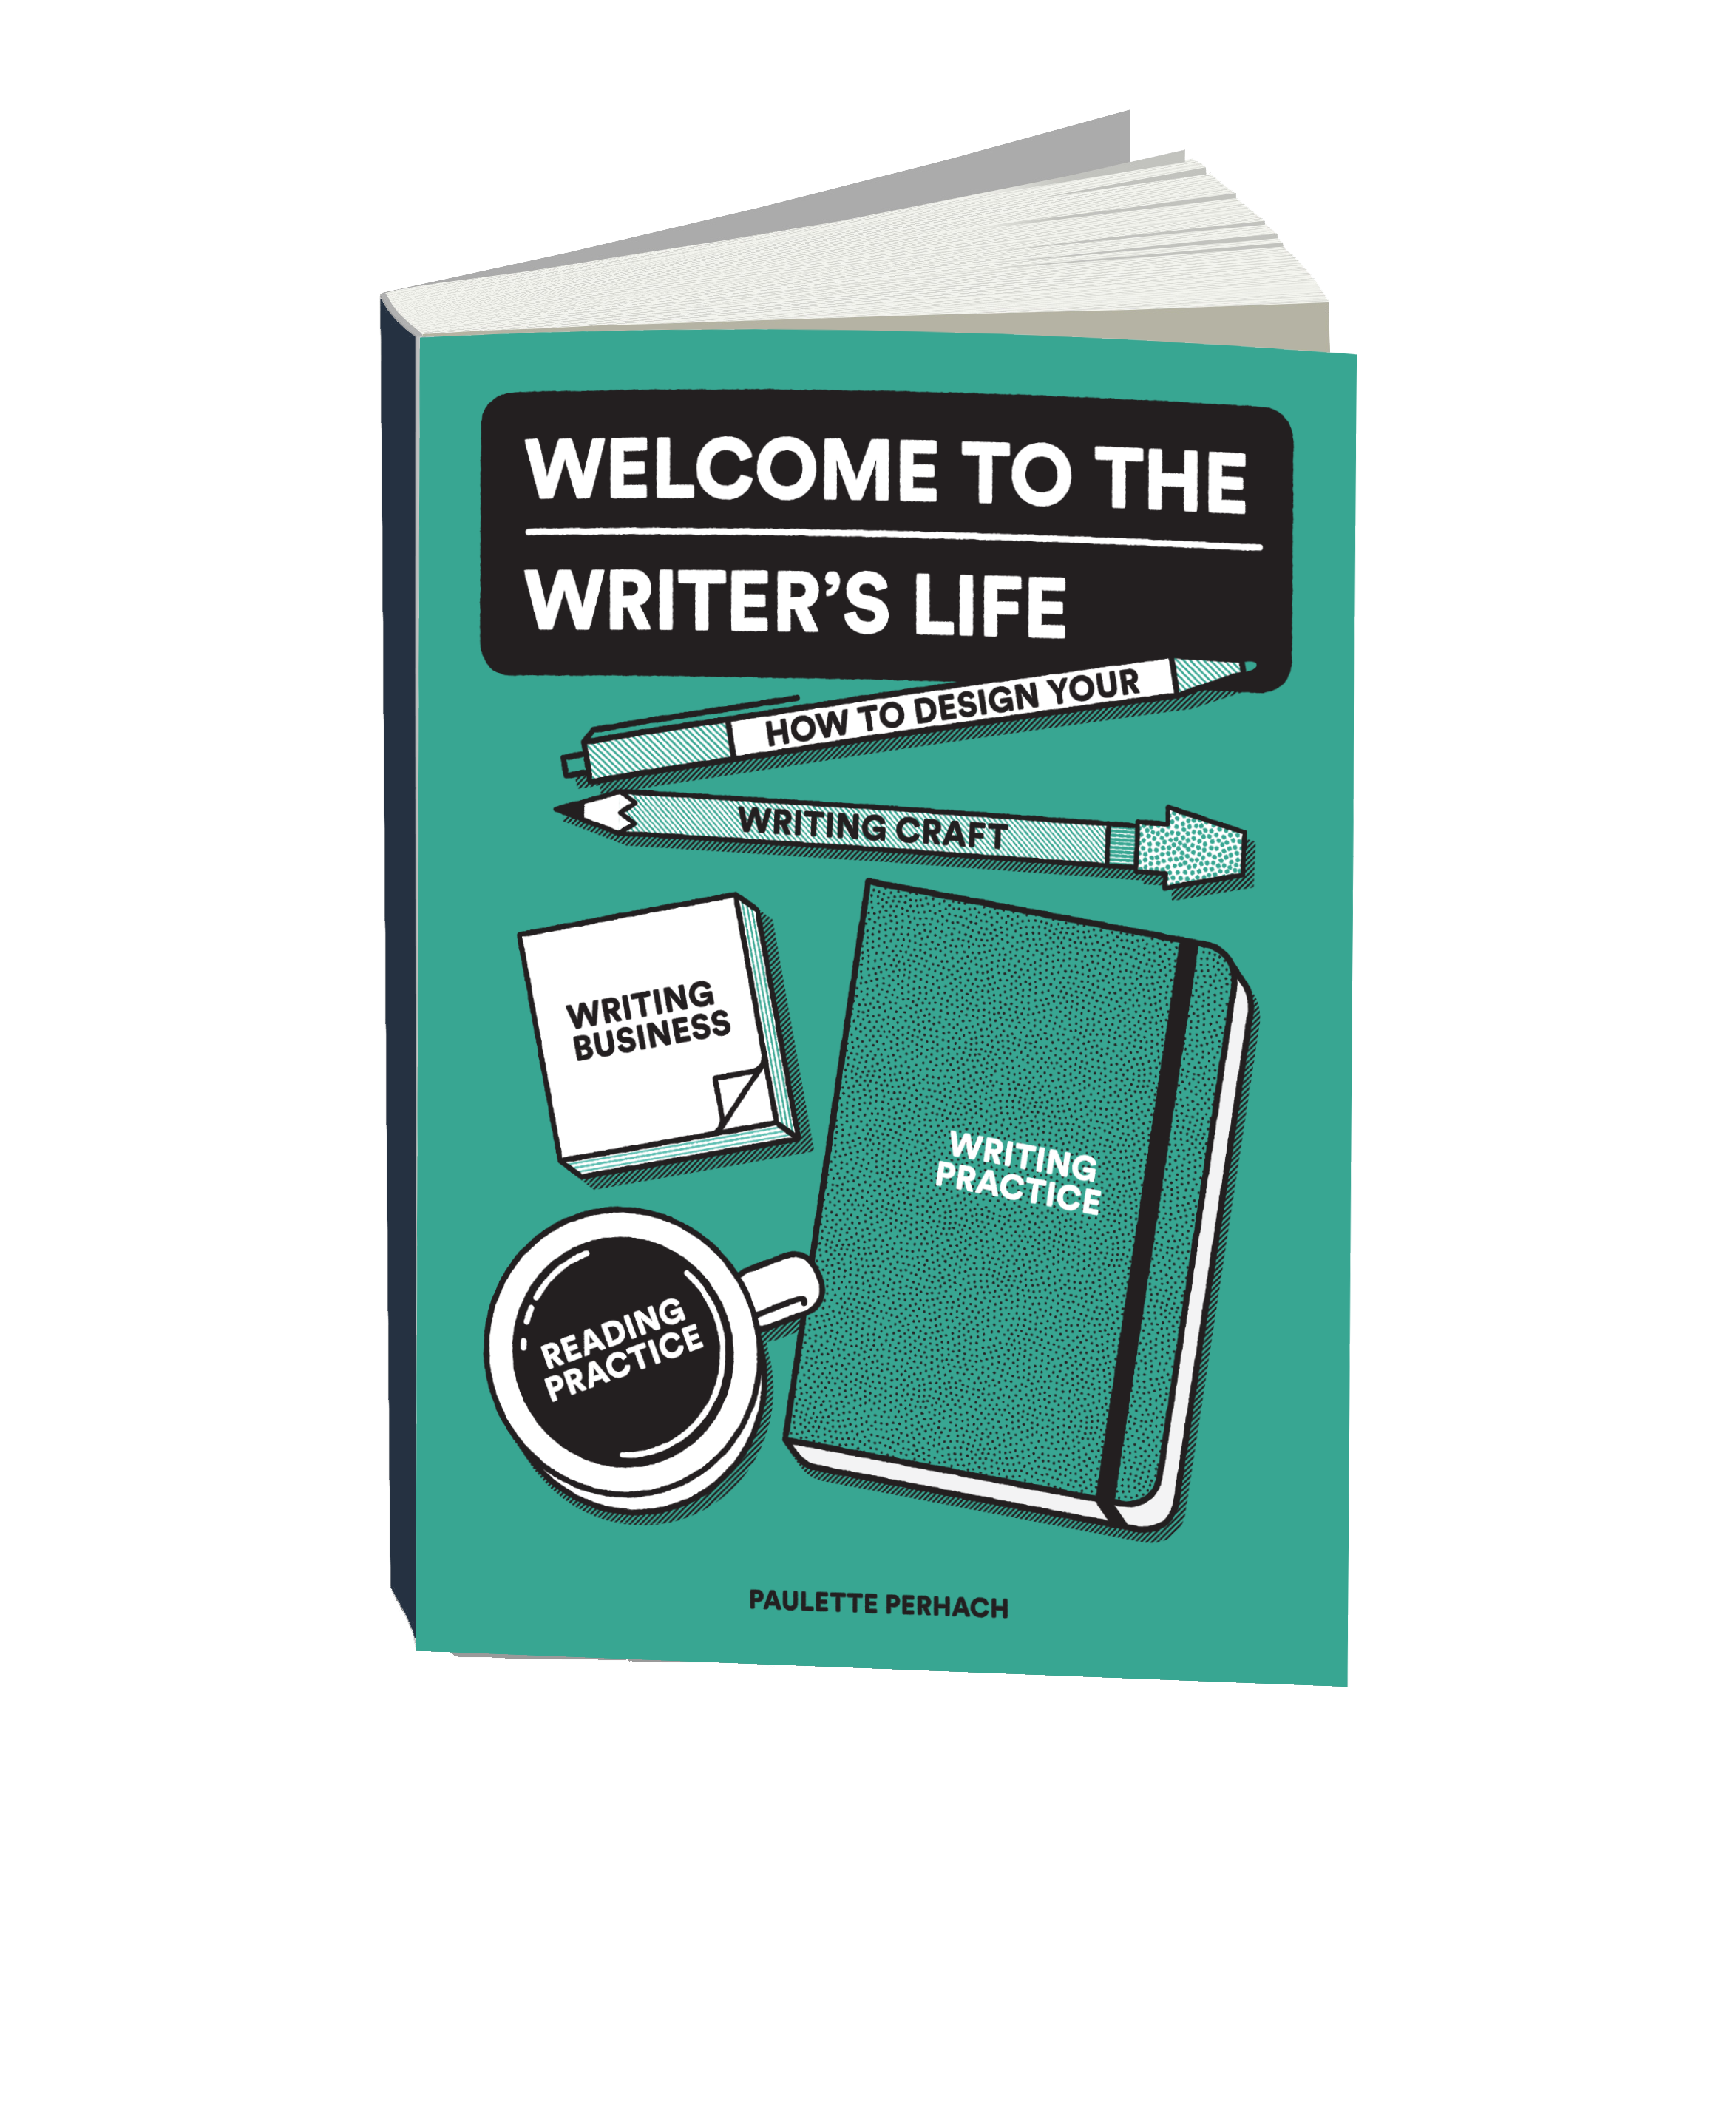 Welcome to the Writer's Life 3D Render Transparant Background.png